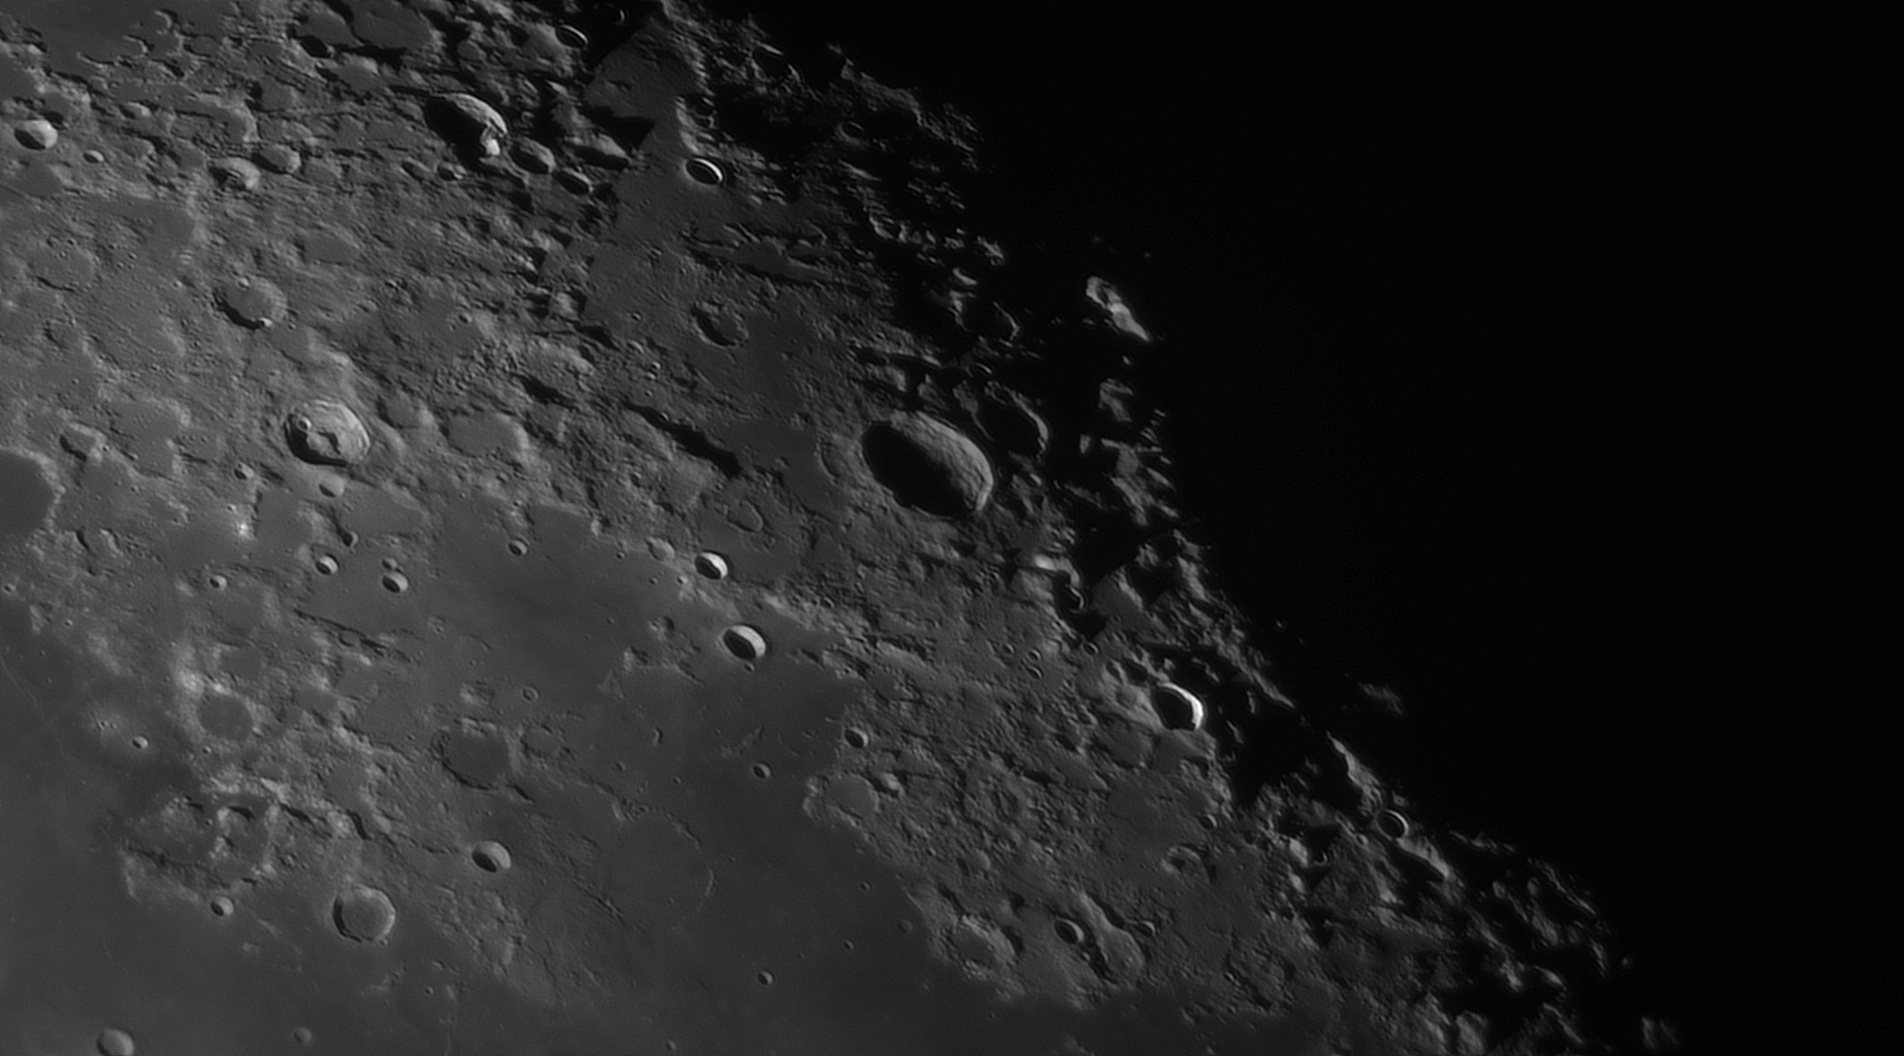 5e56c9d1a85b9_Moon_055741_120220_ZWOASI290MM_IR_742nm_AS_P30_lapl4_ap883_AI_Deconvolution_9.jpg.ccd0bb8e8da51110f03359a9a8ff18cc.jpg